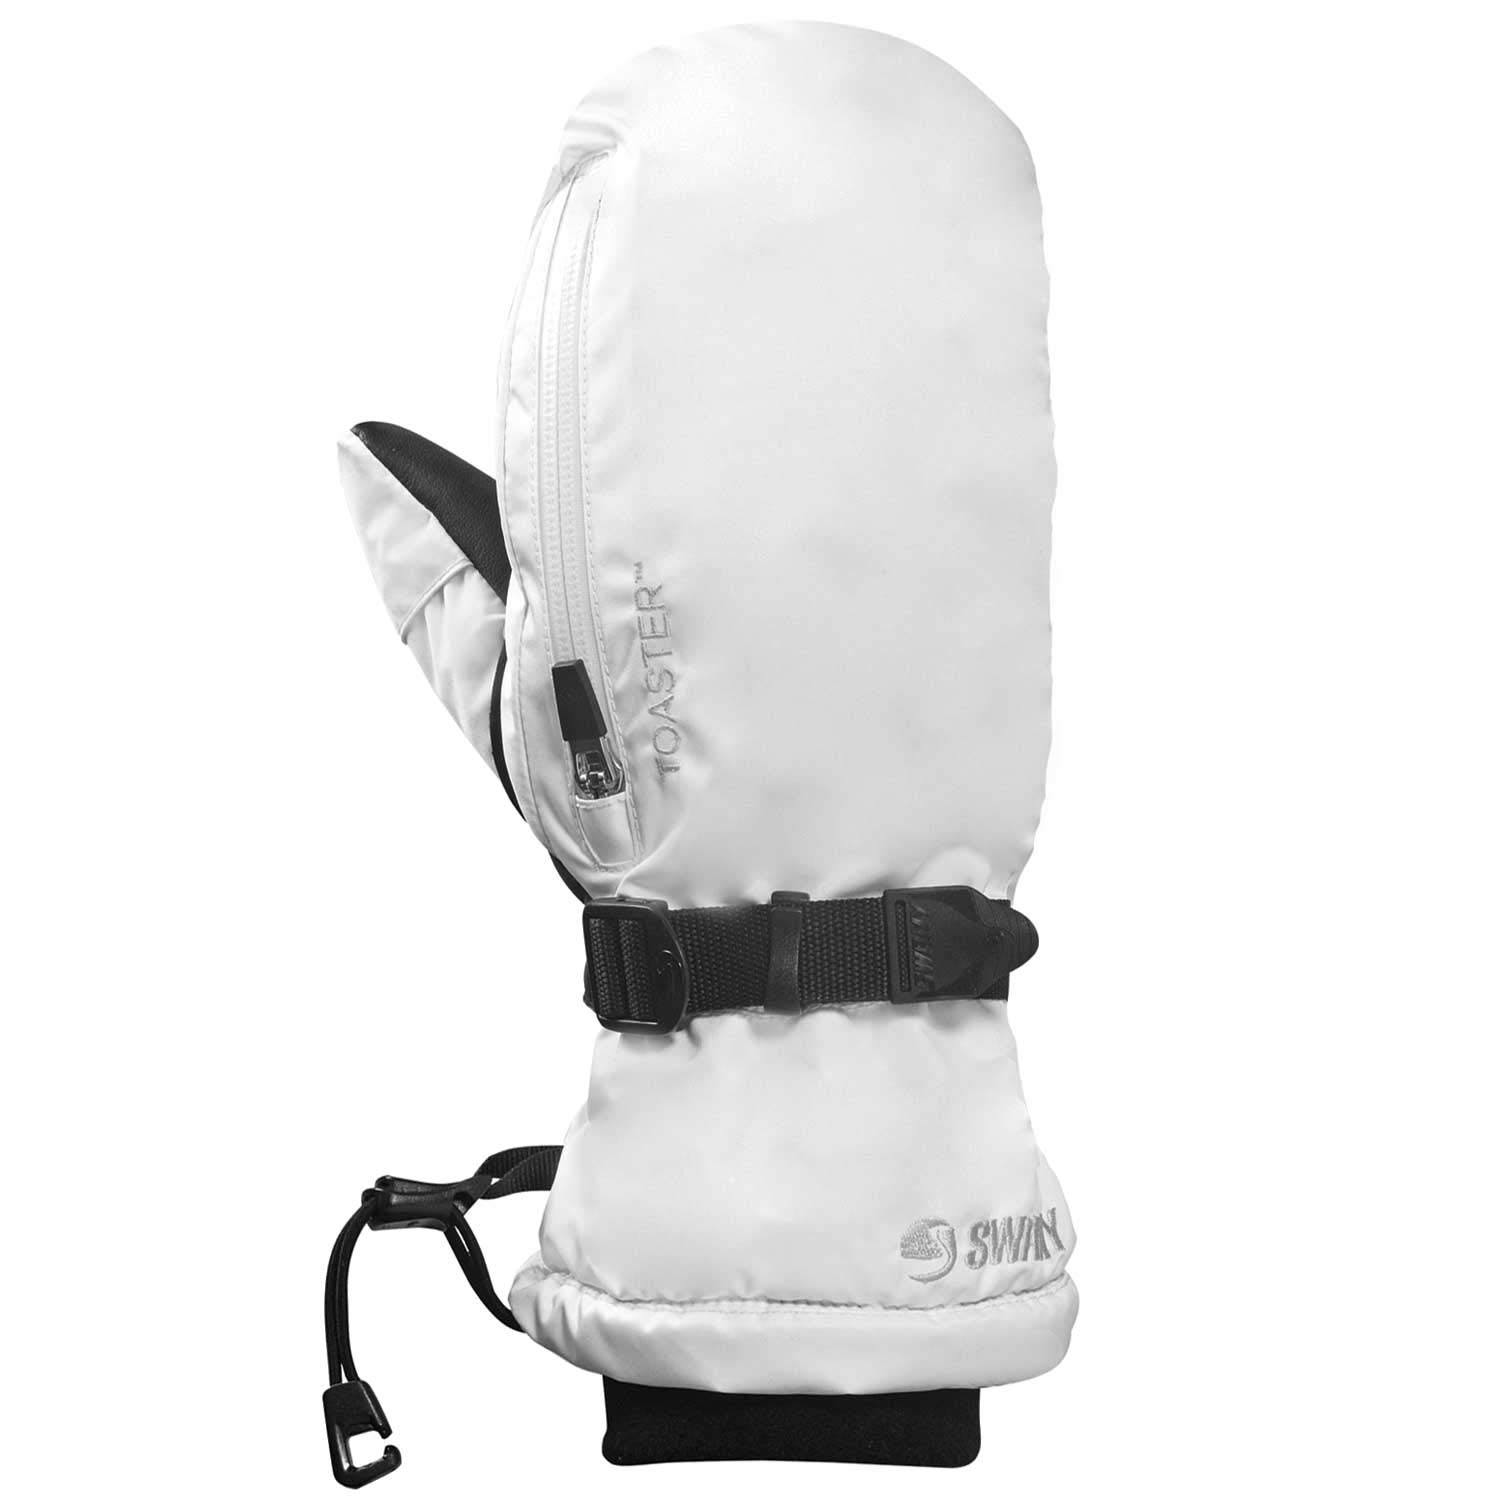 Swany Ladies Touch Screen Arctic Mitt, White, Large